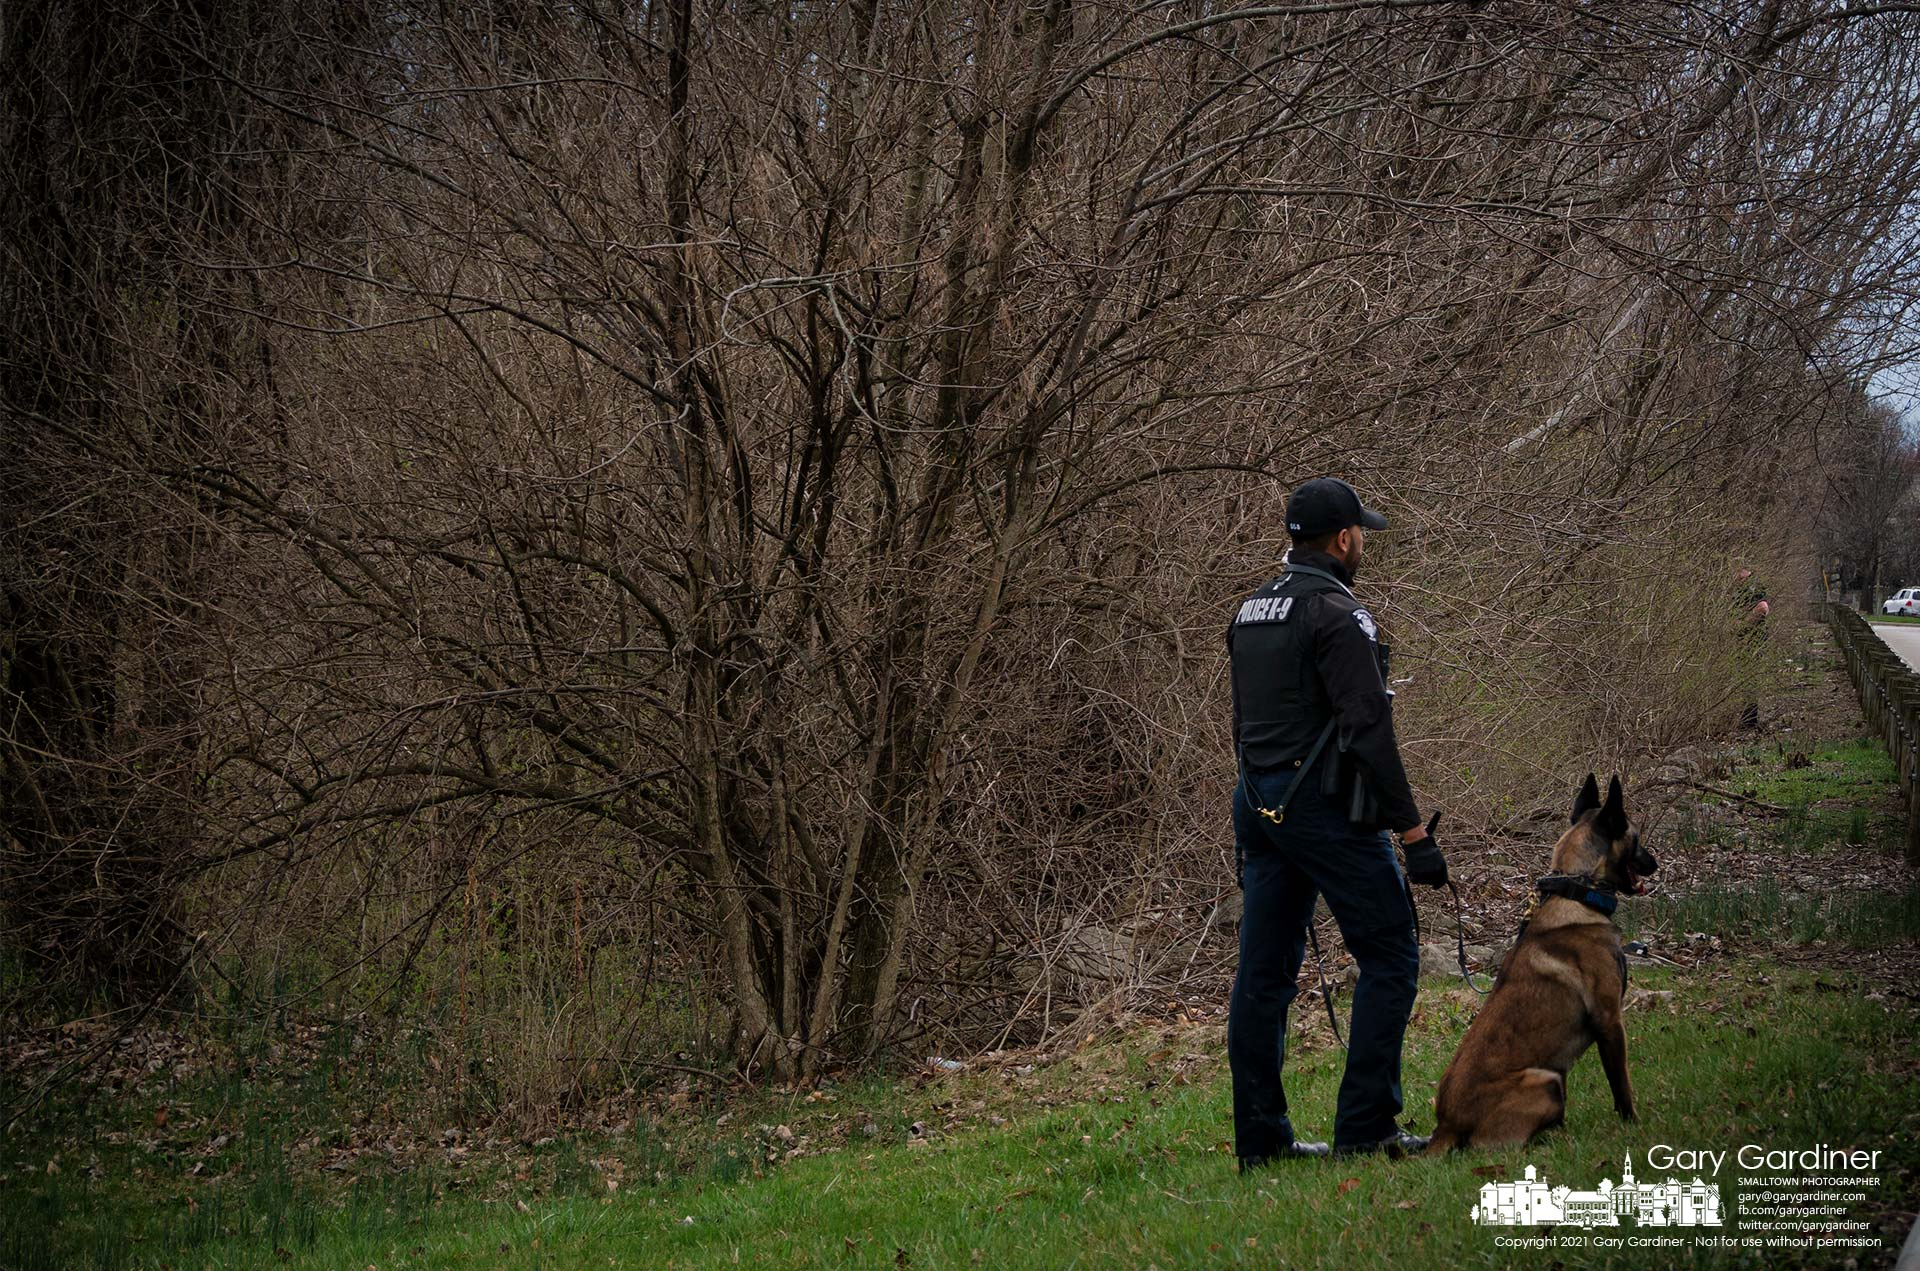 Westerville Police K-9 Officer Khyrell Baggoo and Bruno briefly stand along Sunbury Road watching a second officer search for a missing man in the woods along the shoreline of Hoover Reservoir. My Final Photo for March 25, 2021.